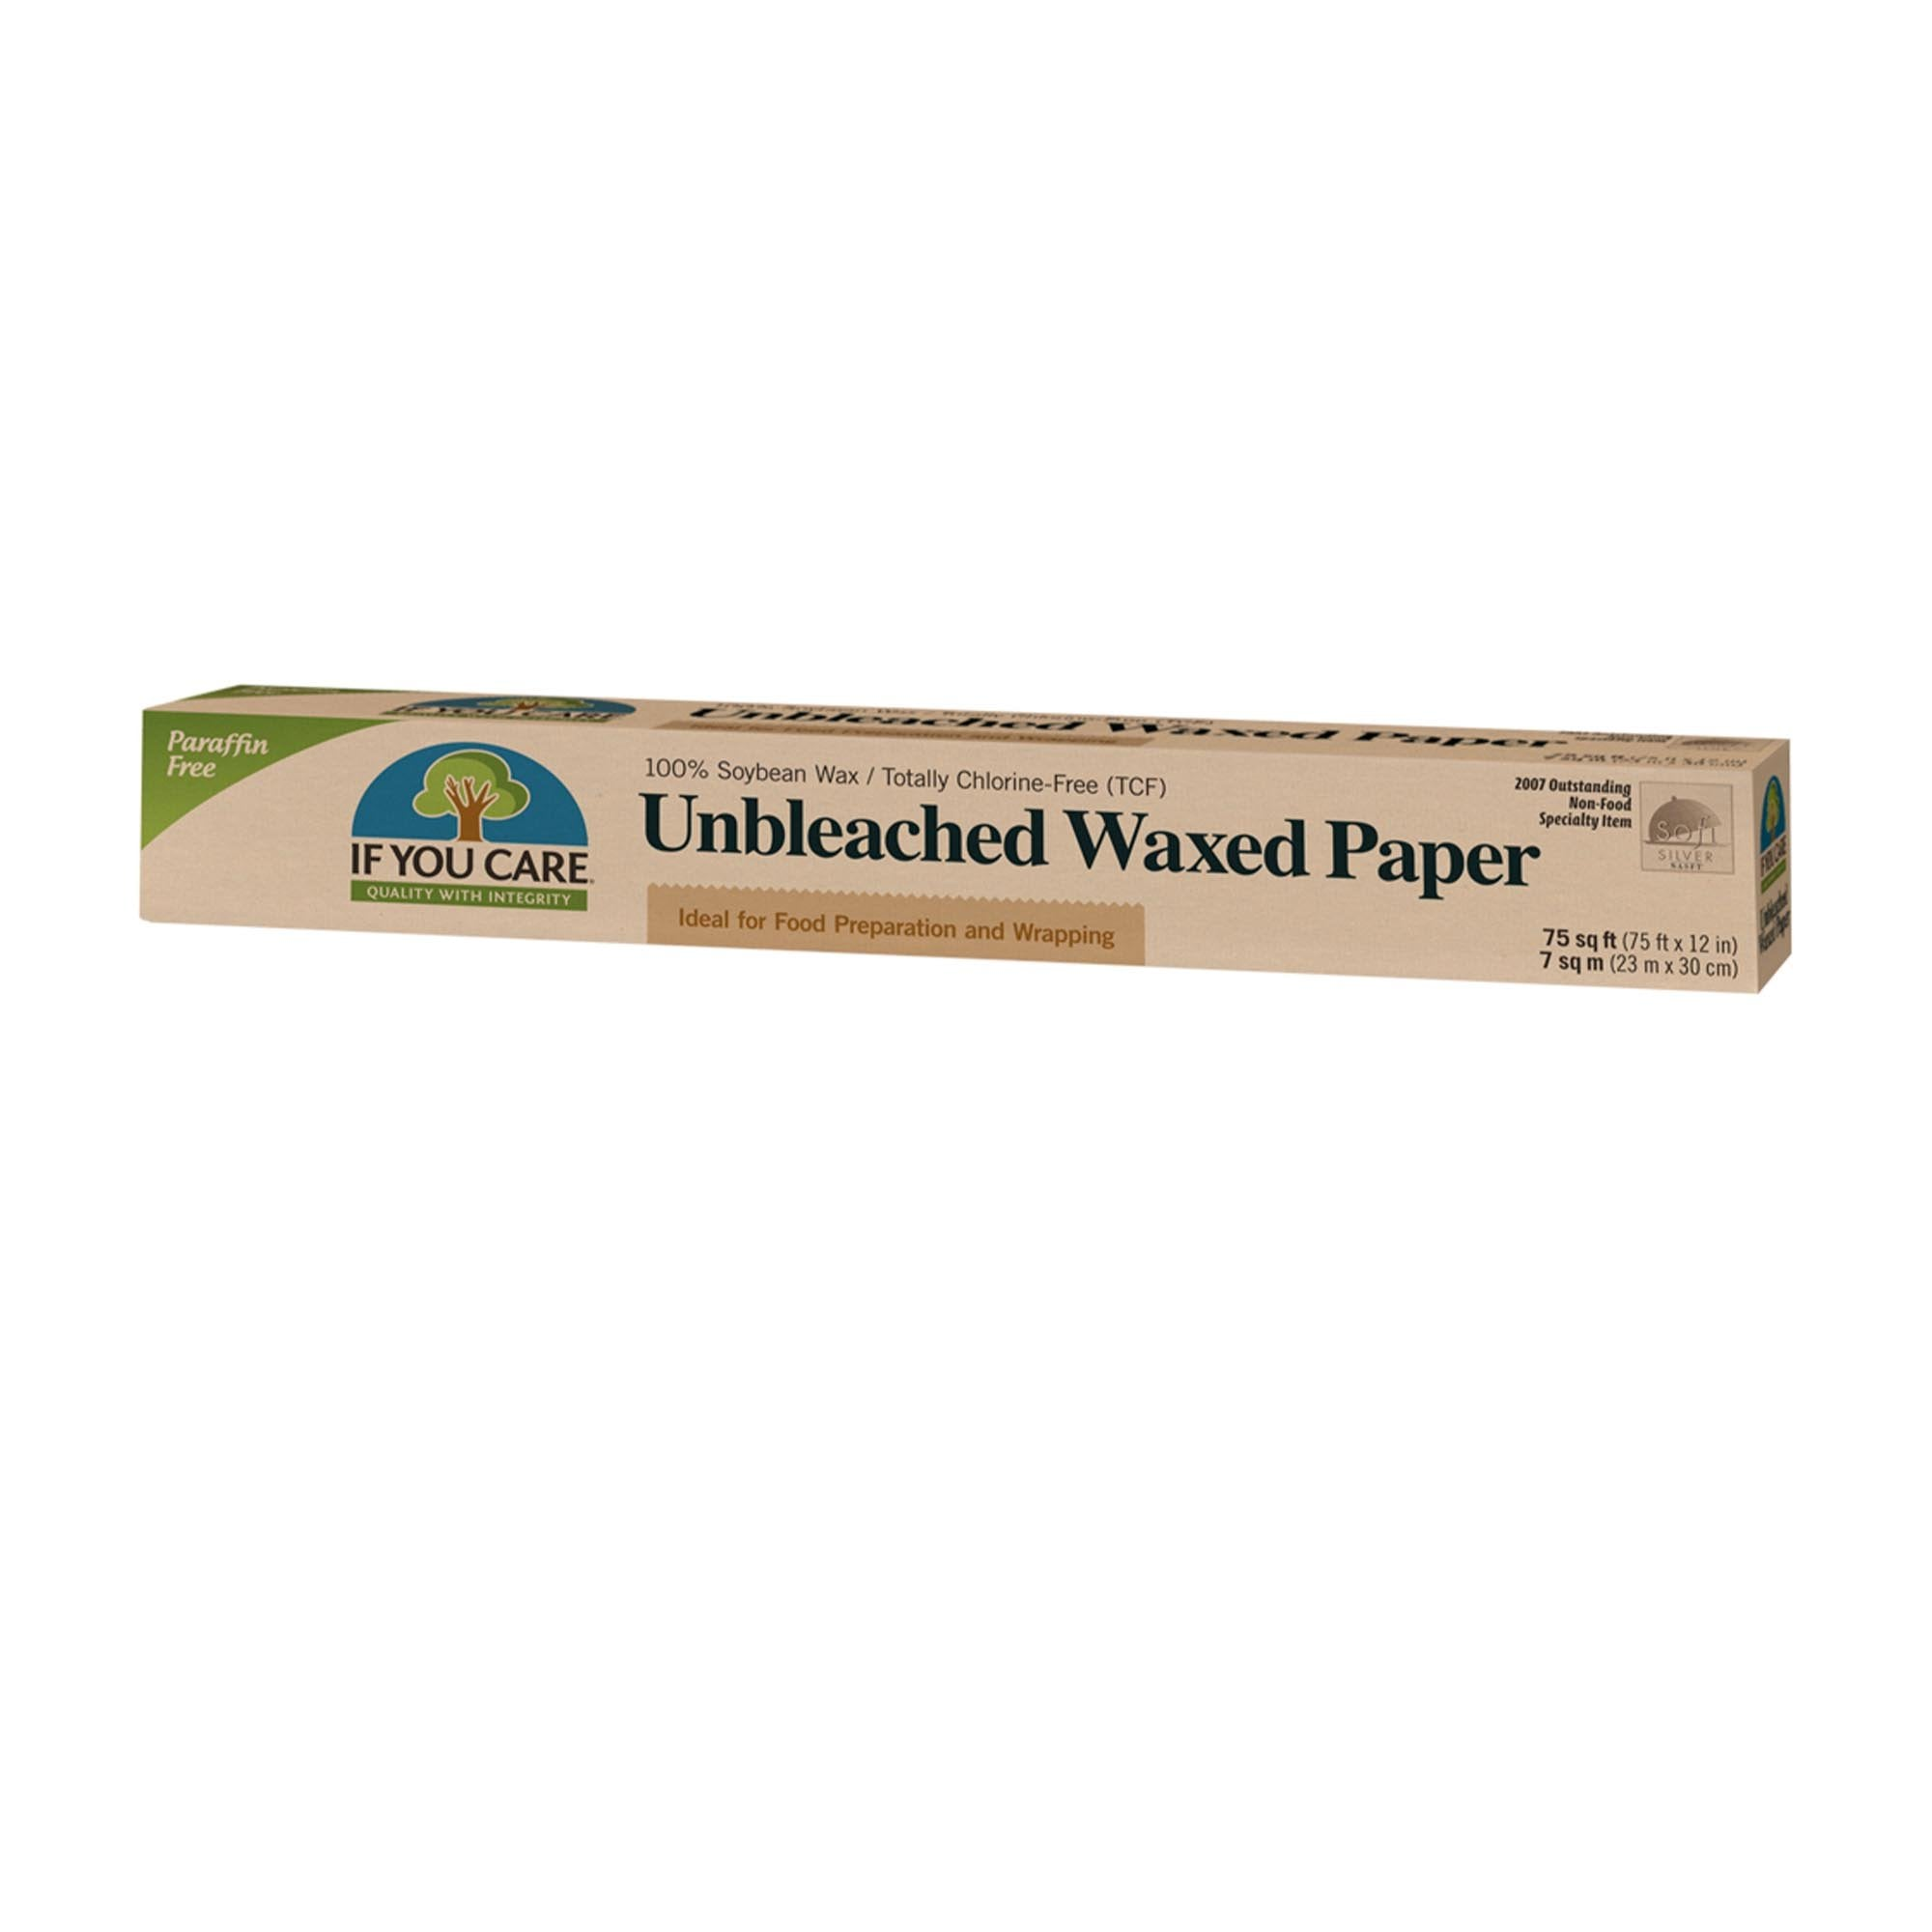 unbleached waxed paper roll in packaging, 75 square feet